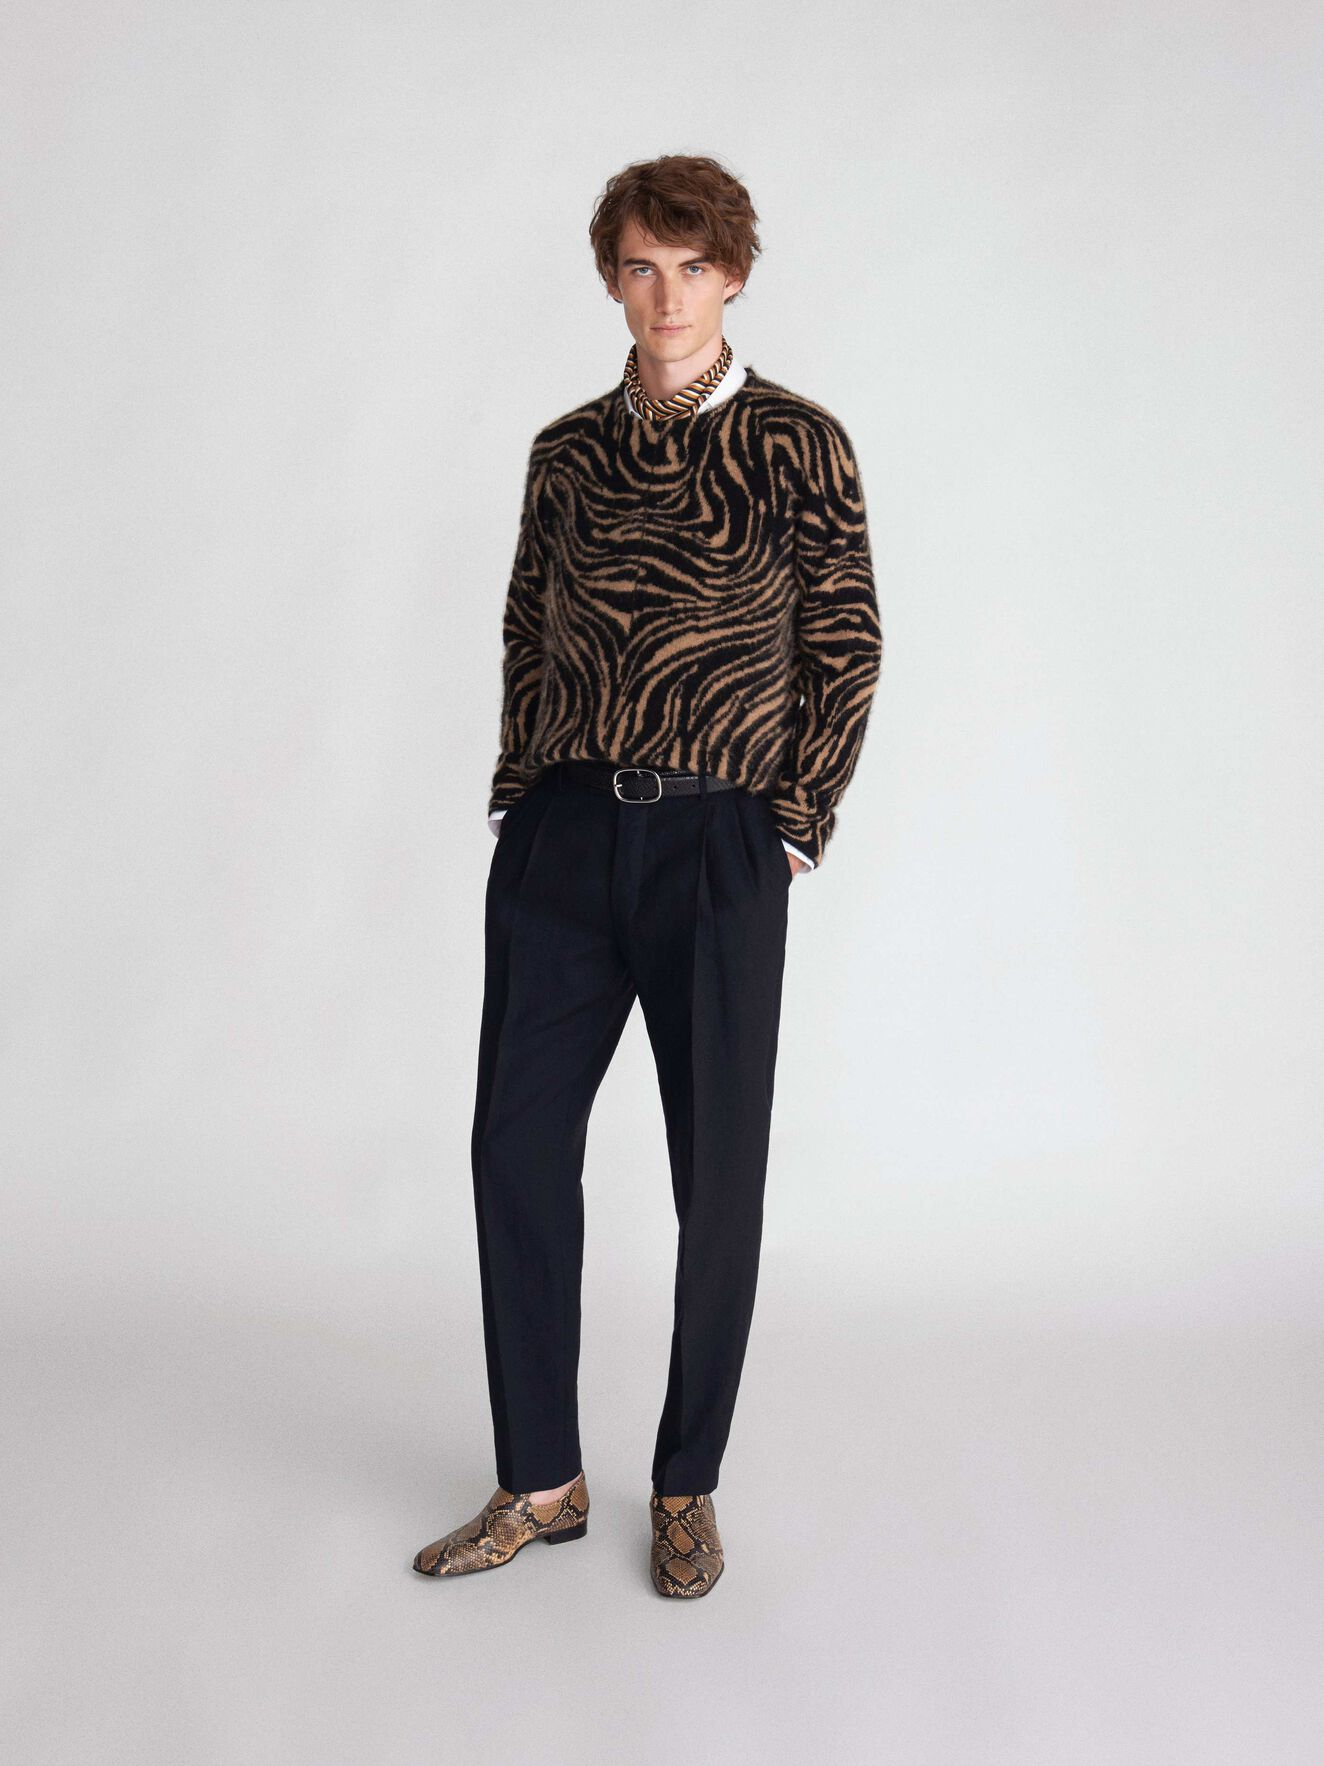 Nexton Pullover in Black from Tiger of Sweden